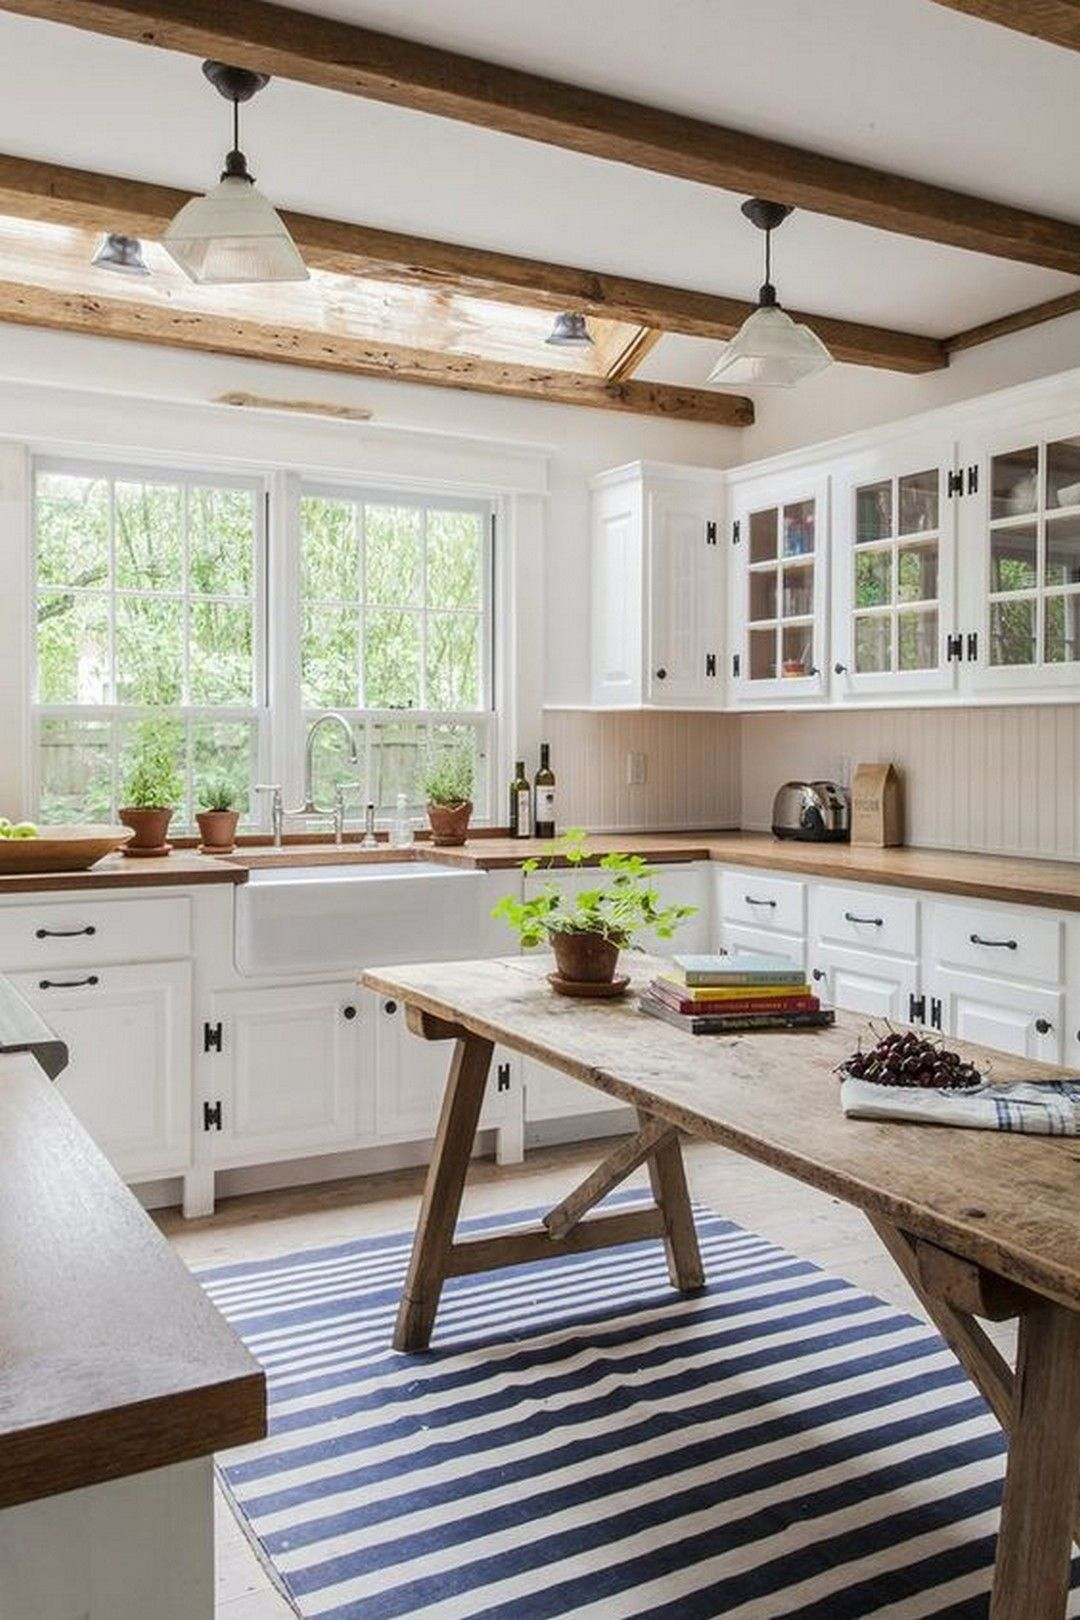 decor and design 38 best farmhouse kitchen decor and design ideas for 2018 38 Dreamiest Farmhouse Kitchen Decor and Design Ideas to Fuel Your Remodel  #feasthome #kitchen #kitchendesign #kitchenideas #kitchenremodel  #kitchenhack ...